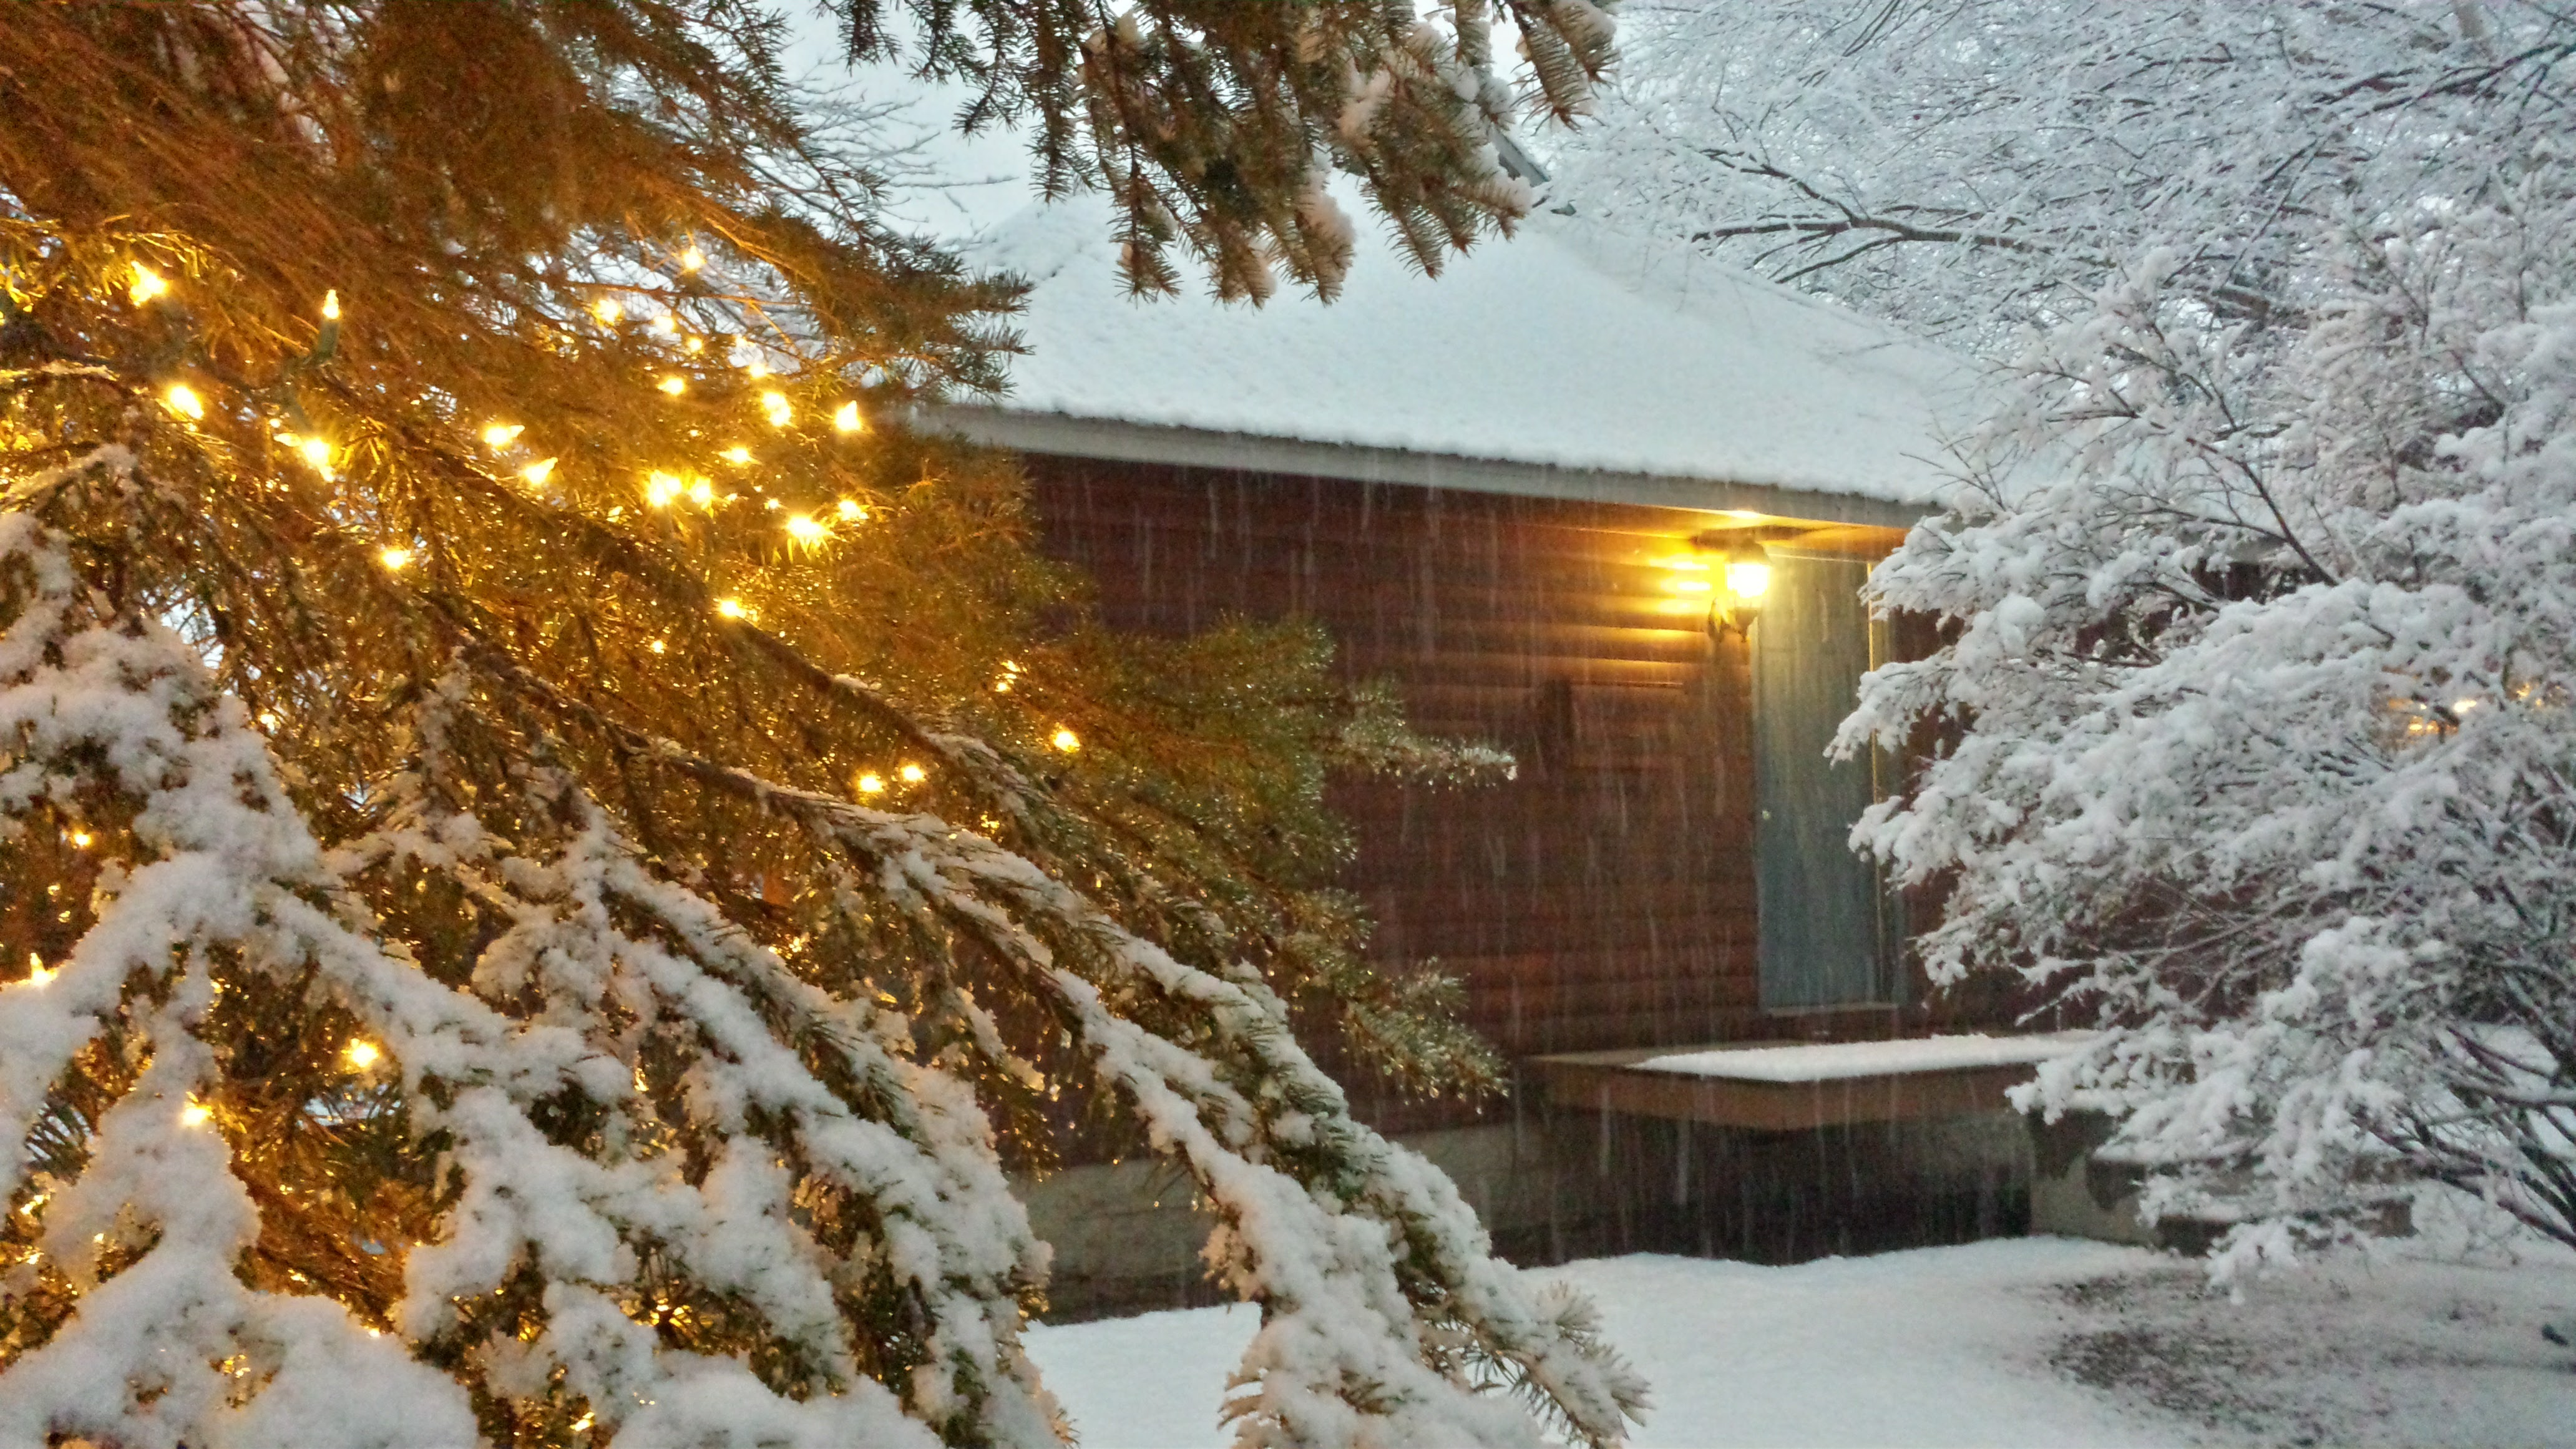 An exterior view of a cabin in the snow.